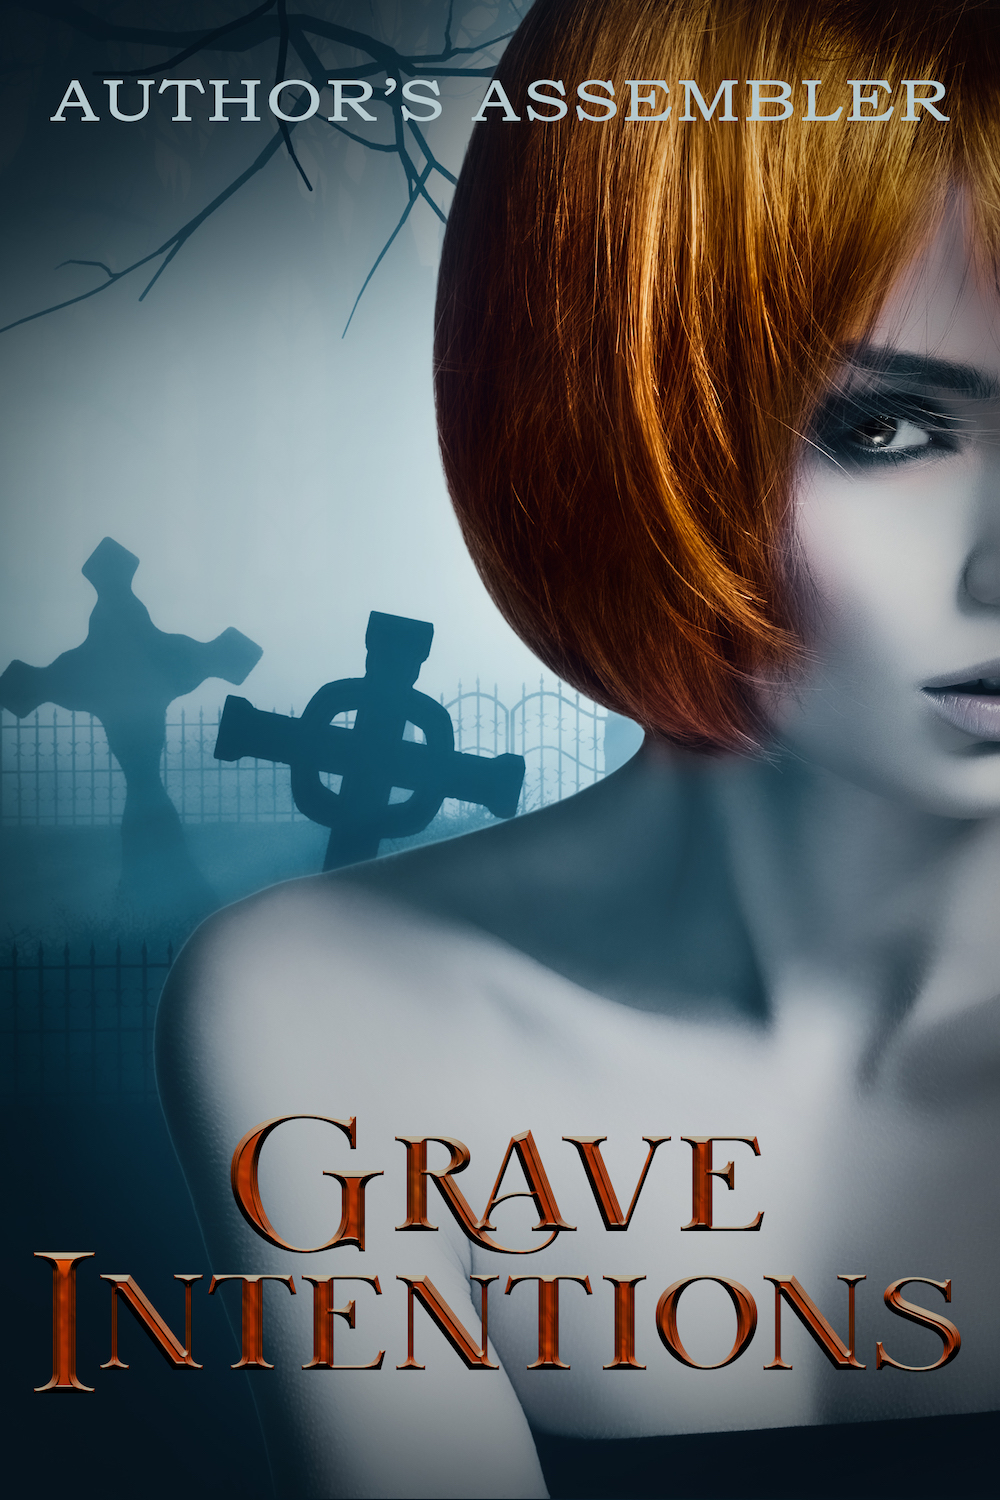 Grave Intentions Urban Fantasy Premade_1000px